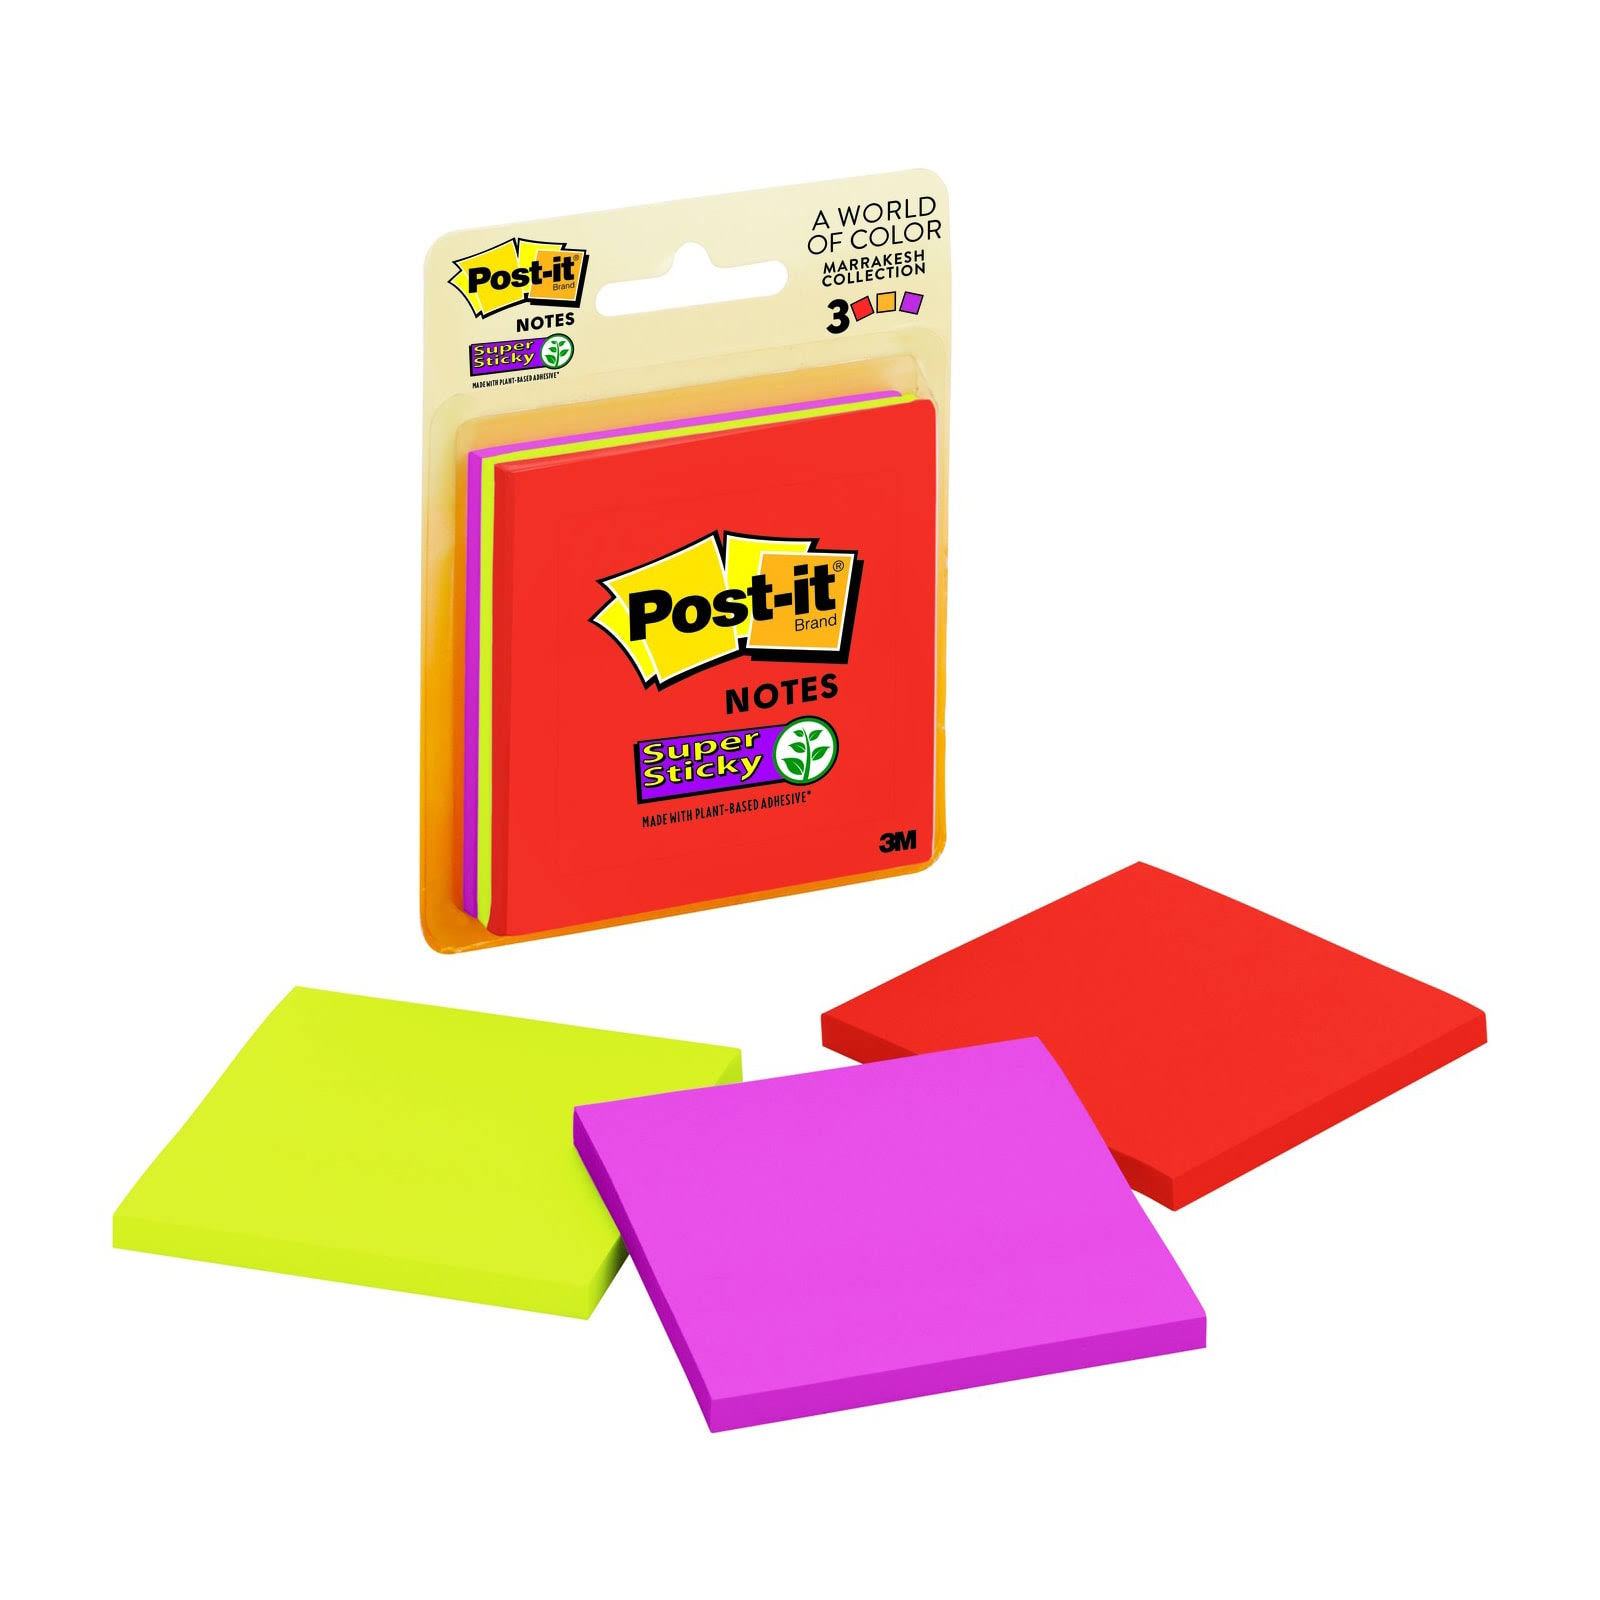 3M Post-it Super Sticky Notes Marrakesh Collection | Assorted 10429932